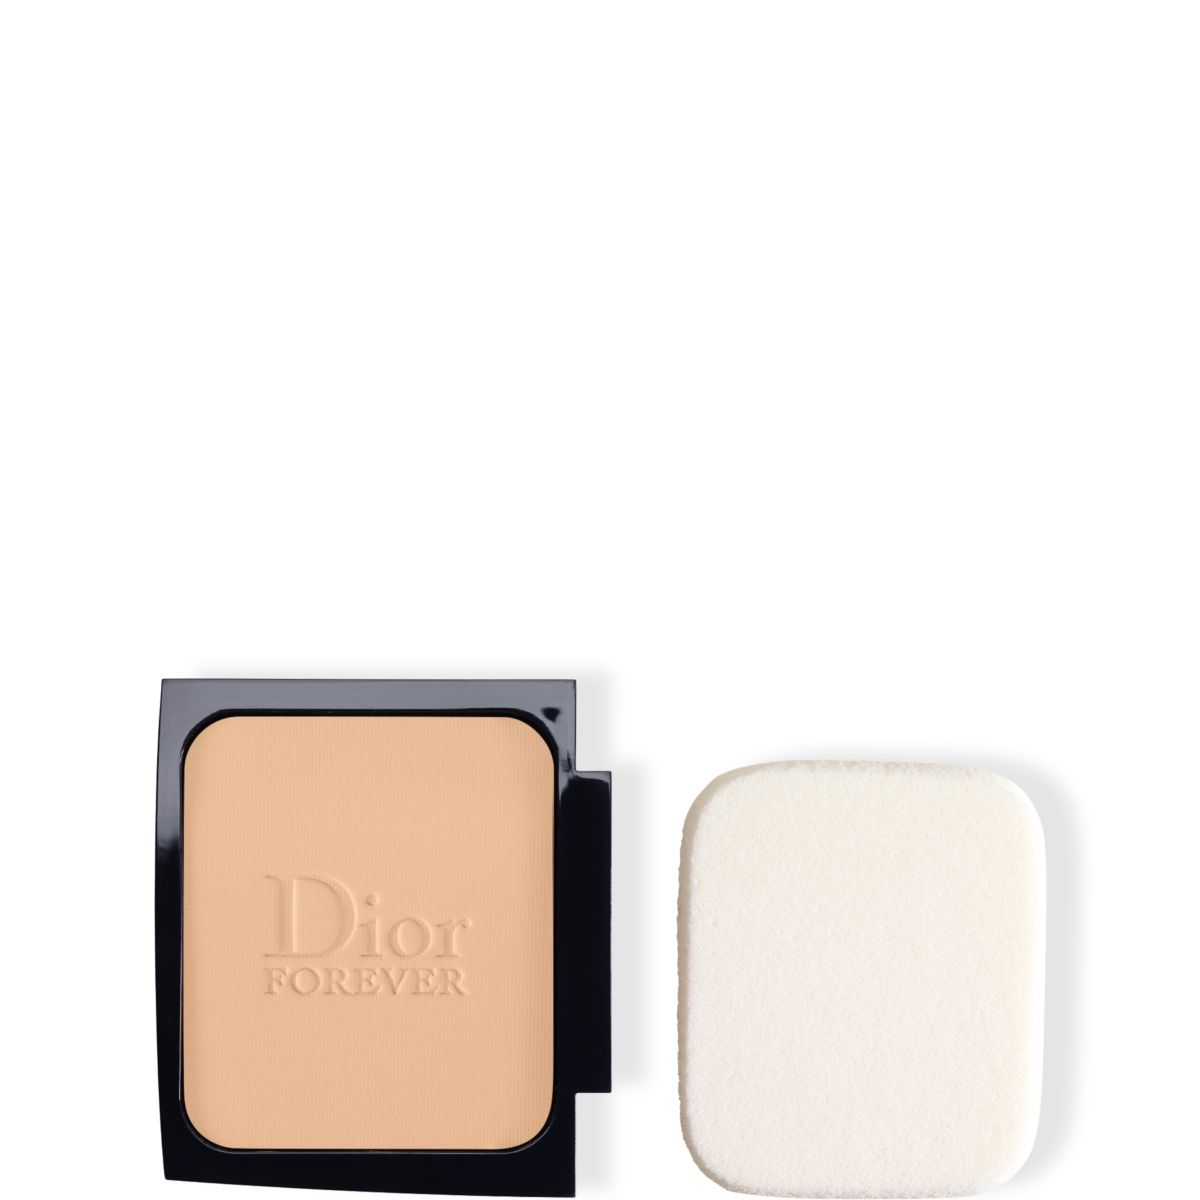 Recharge Diorskin Forever Extreme Control - DIOR